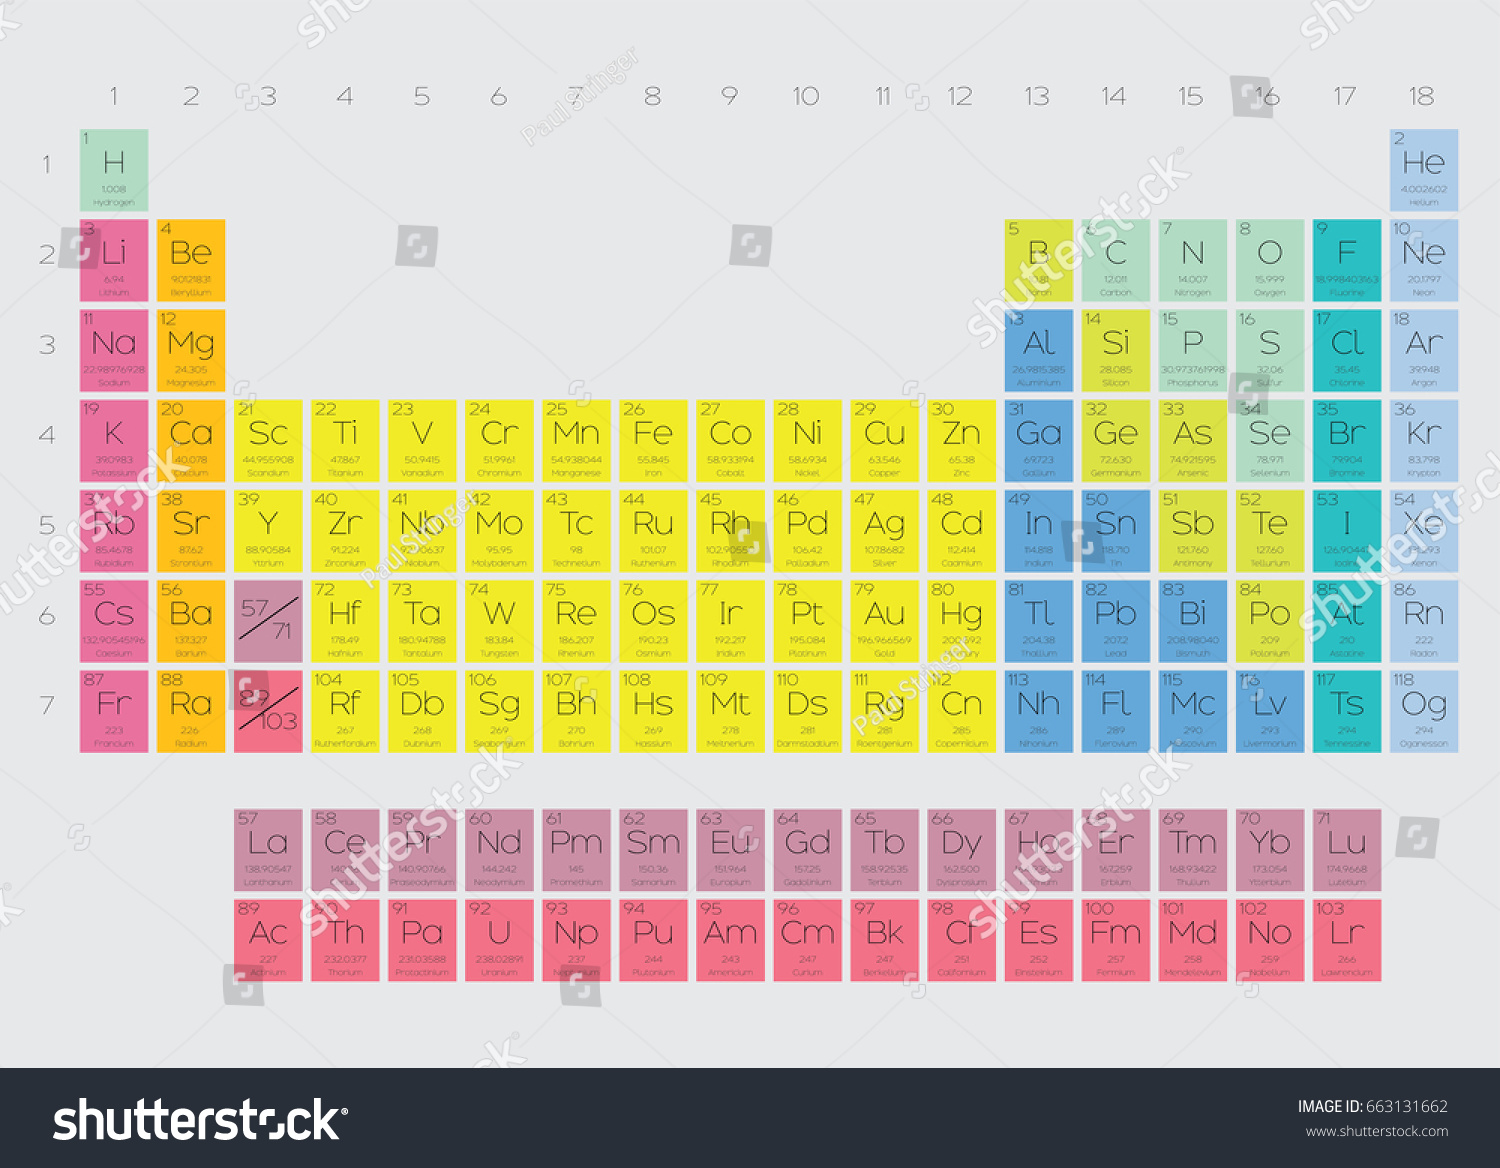 Periodic table of elements color coded image collections periodic table of elements color coded gallery periodic table images periodic table of elements color coded gamestrikefo Images